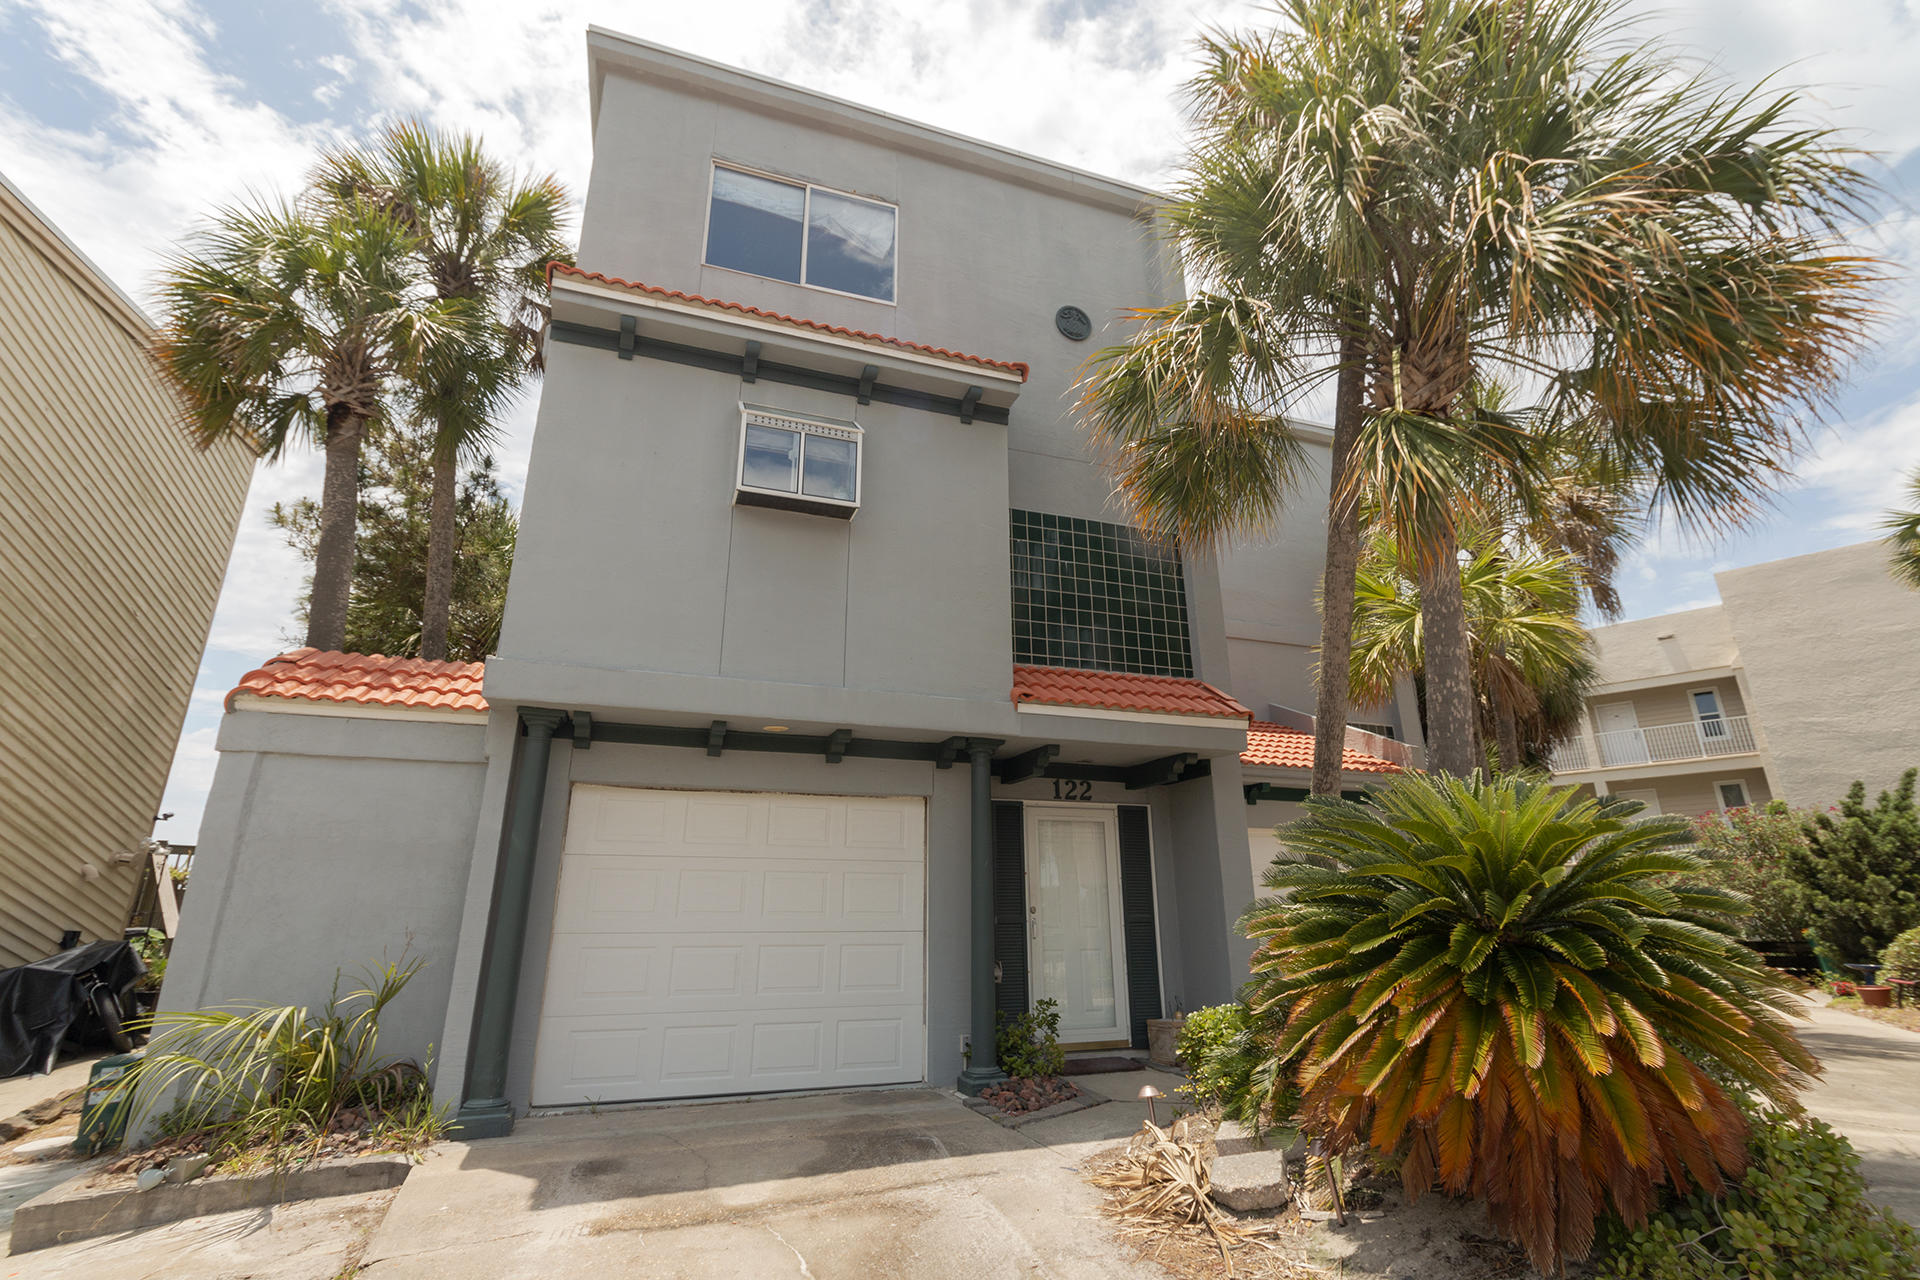 Photo of home for sale at 122 Gulf Winds, Destin FL